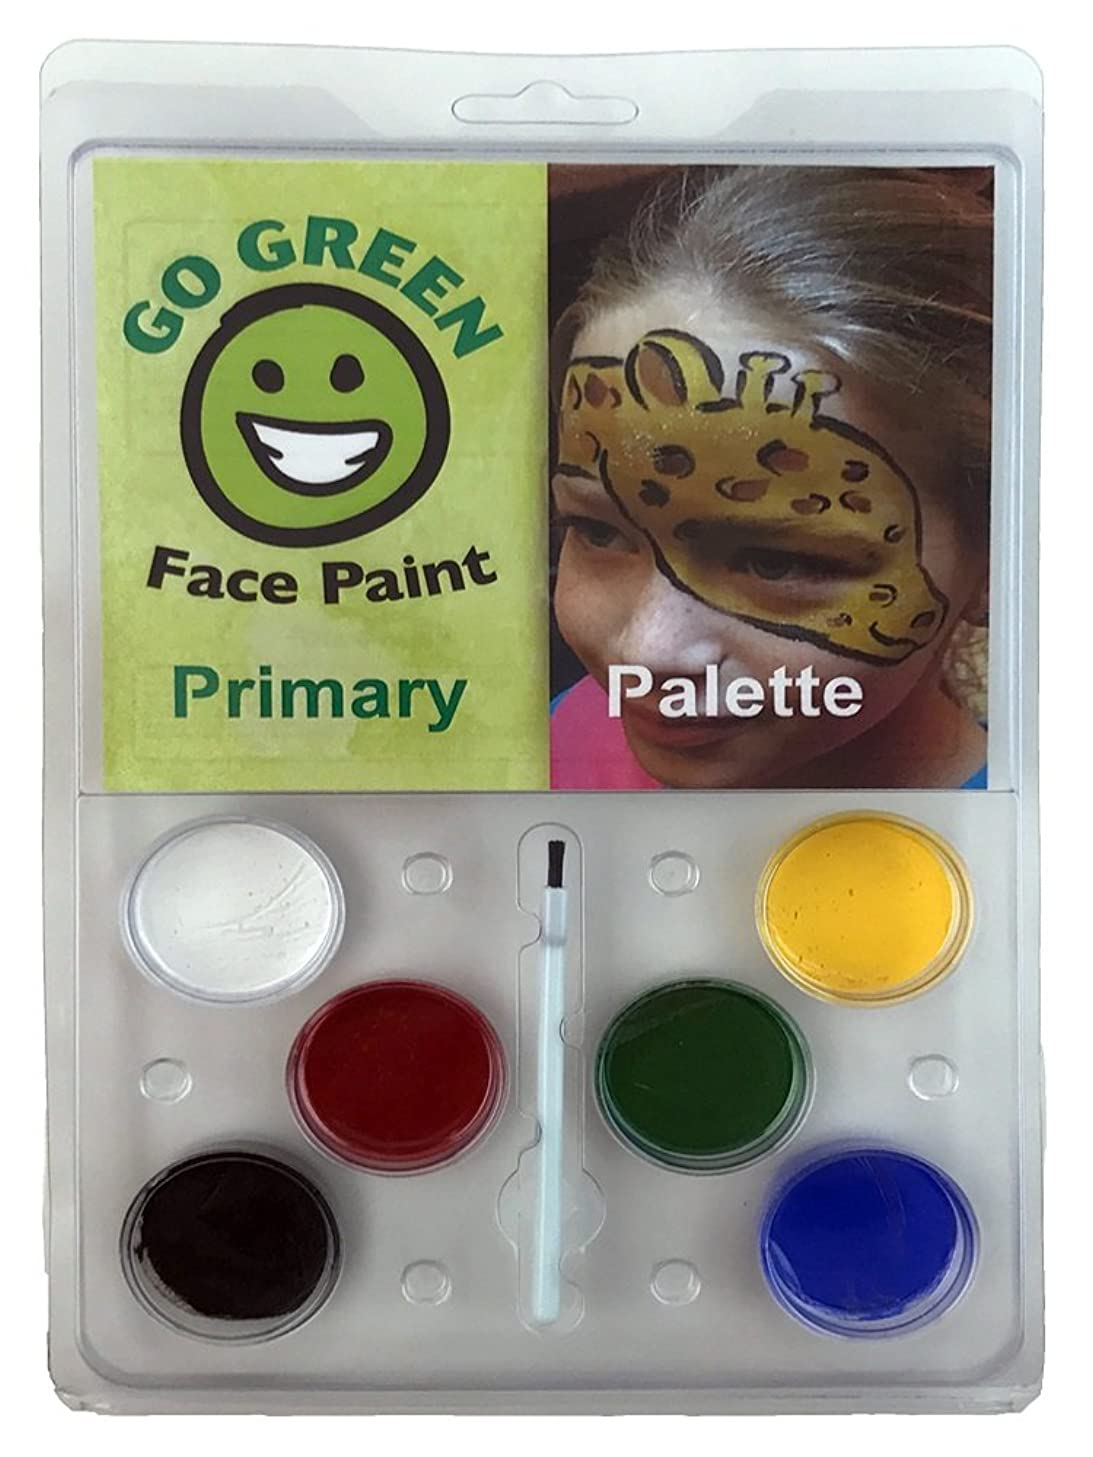 Face Paint Kit for Kids - Water-Based Paints for Many Faces Professional Award Winning Face Painting Set Safe for All Skin Types - 6 Washable Non-Toxic Face Paints Works Well with Stencils & Brushes